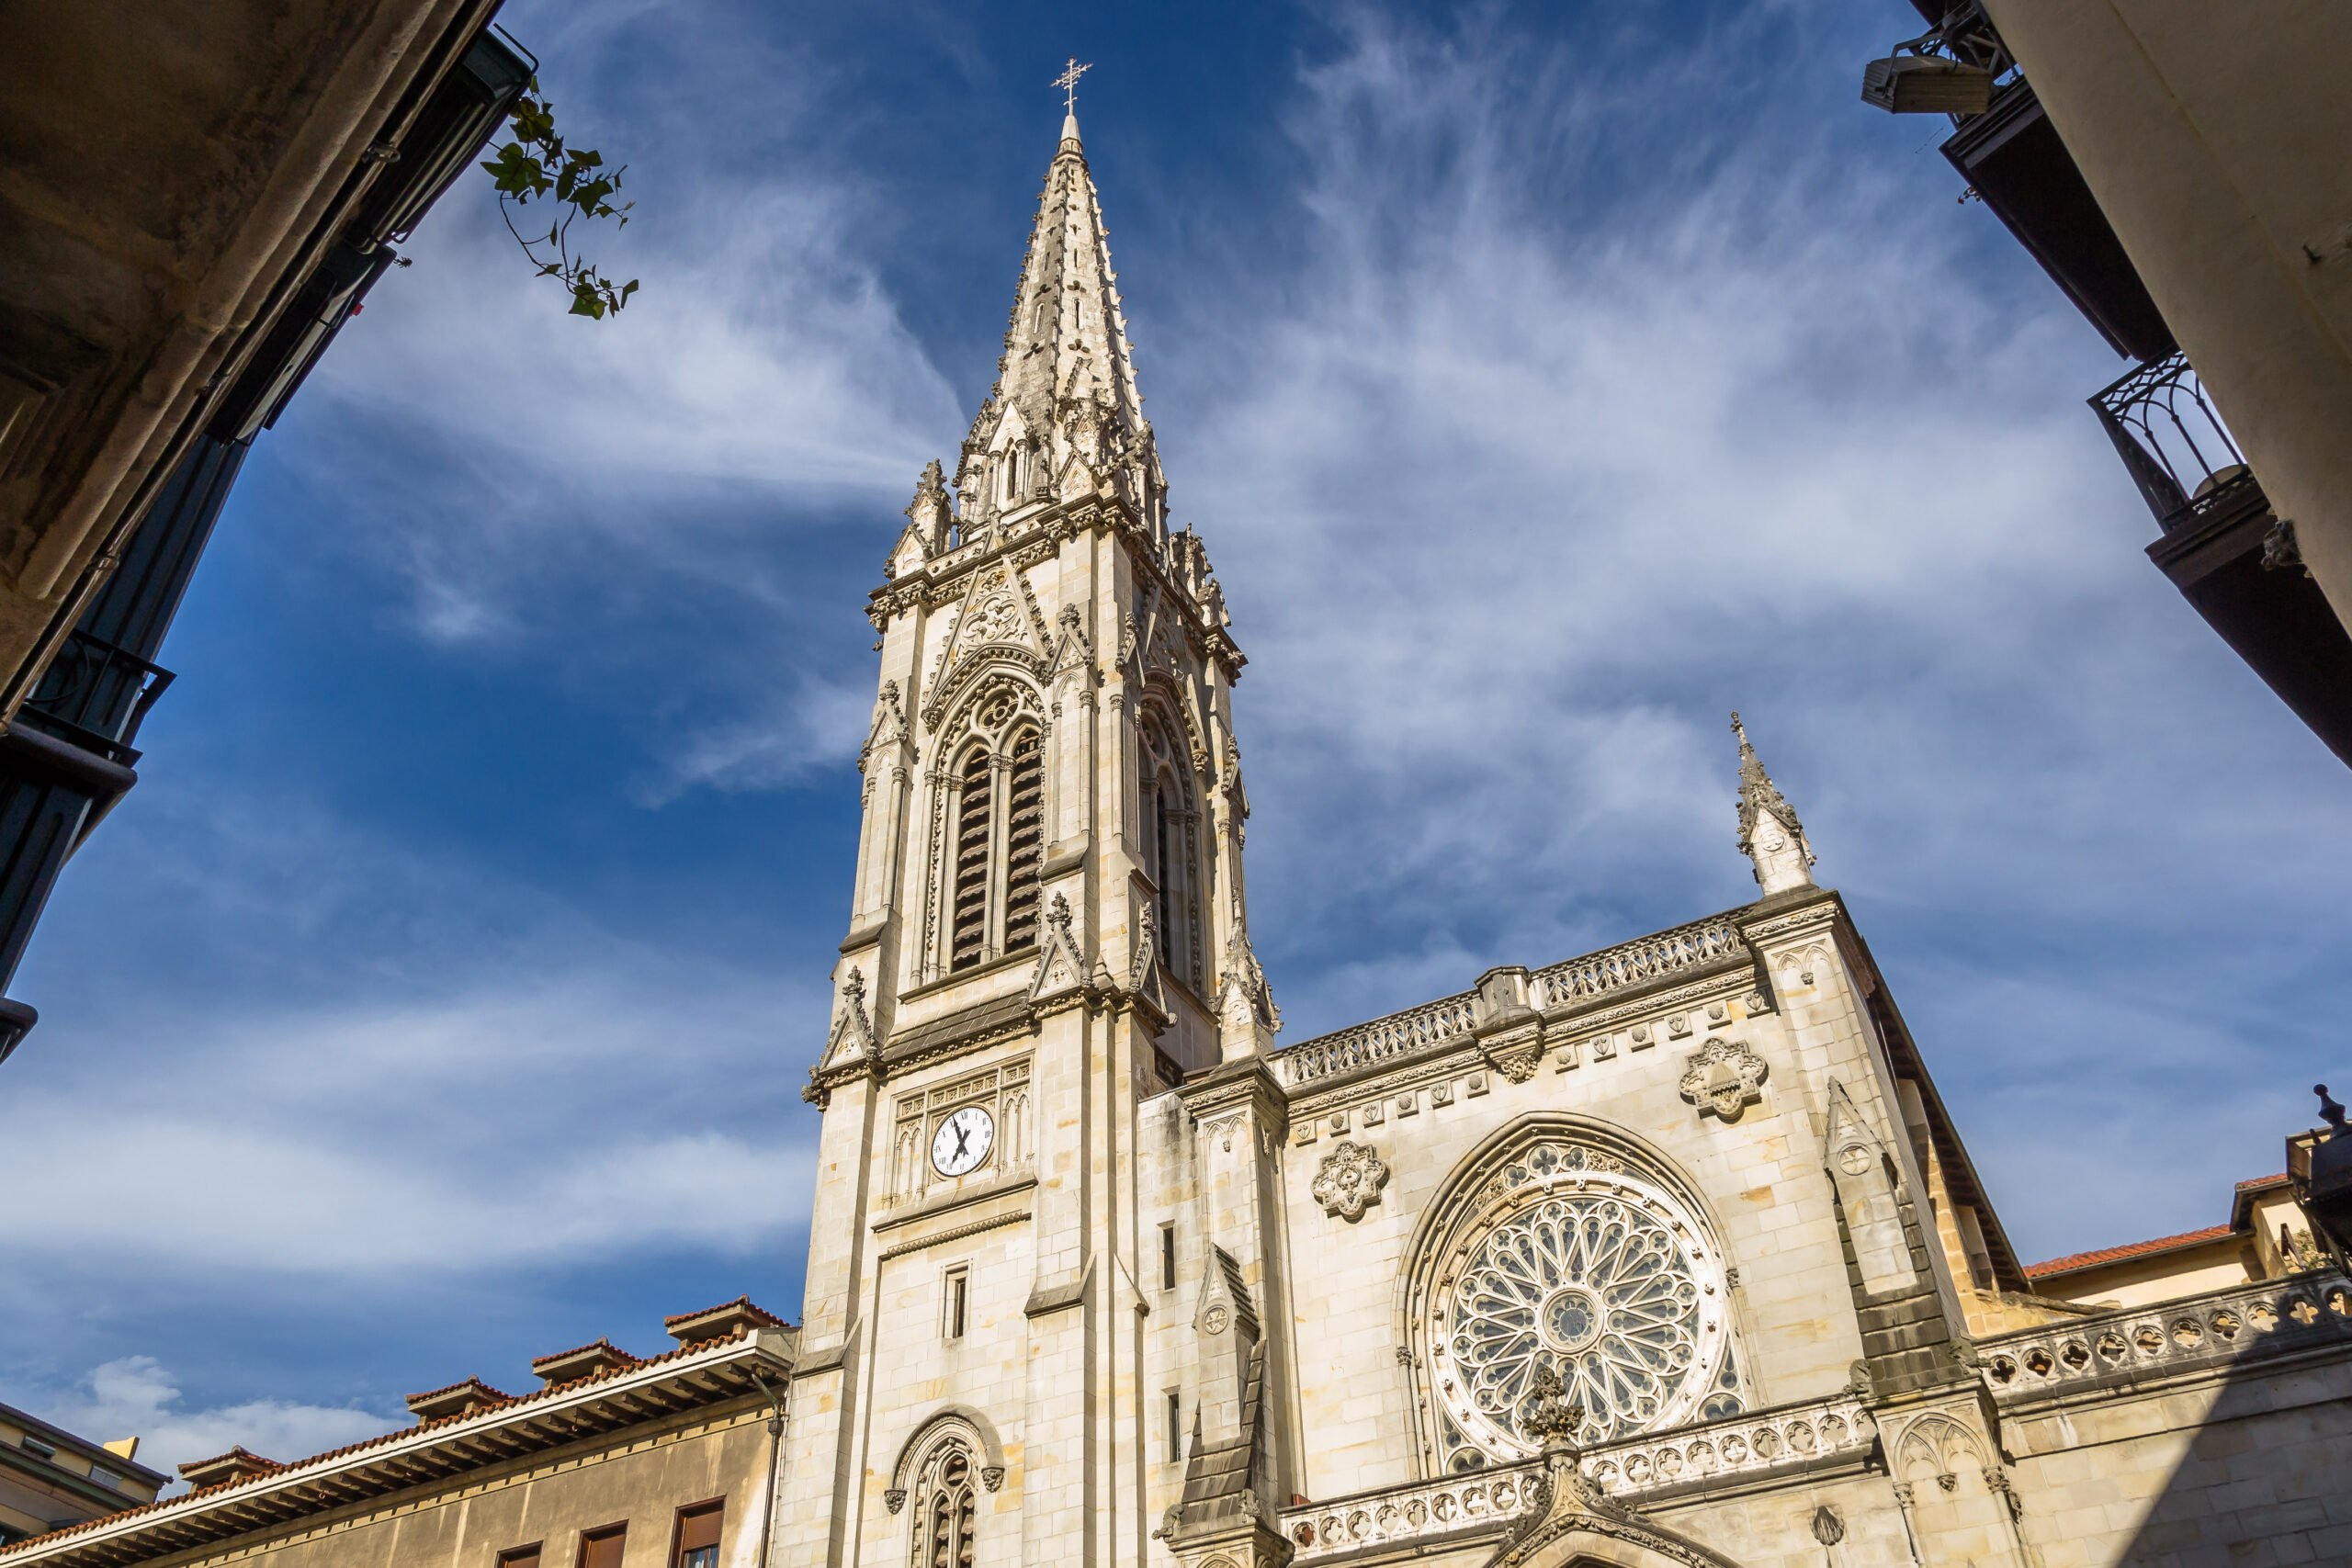 Santiago Cathedral Is One Of The Famous Landmarks Of Bilbao - Visit It On The Bilbao Old City Tour